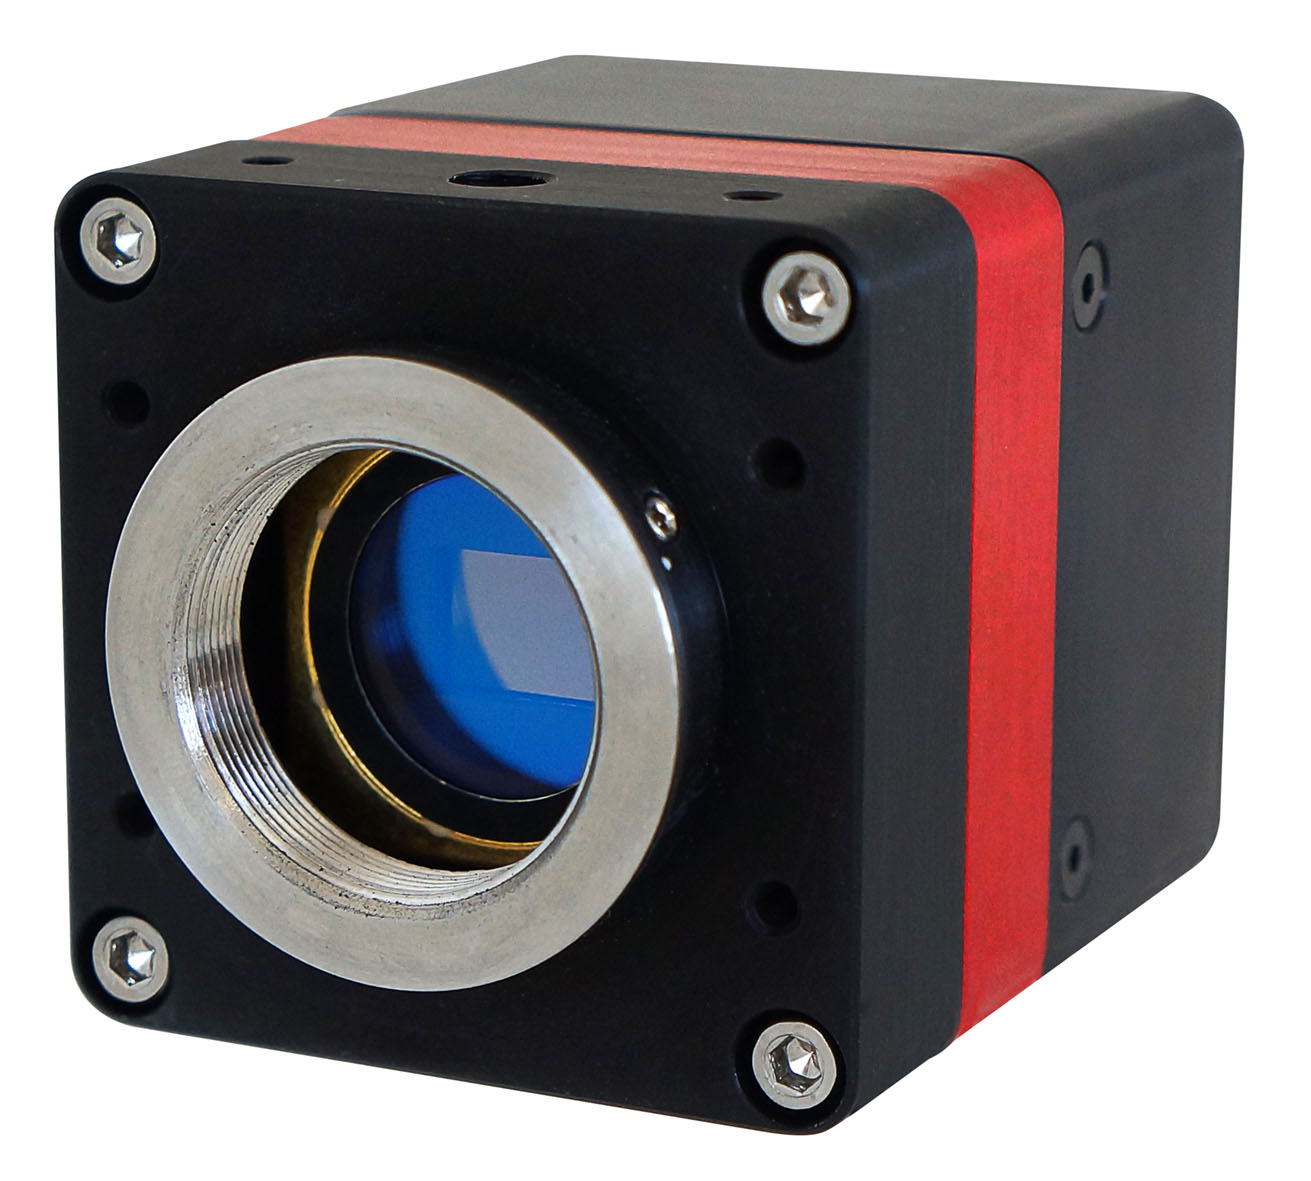 Raptor Photonics OWL 640 SWIR camera